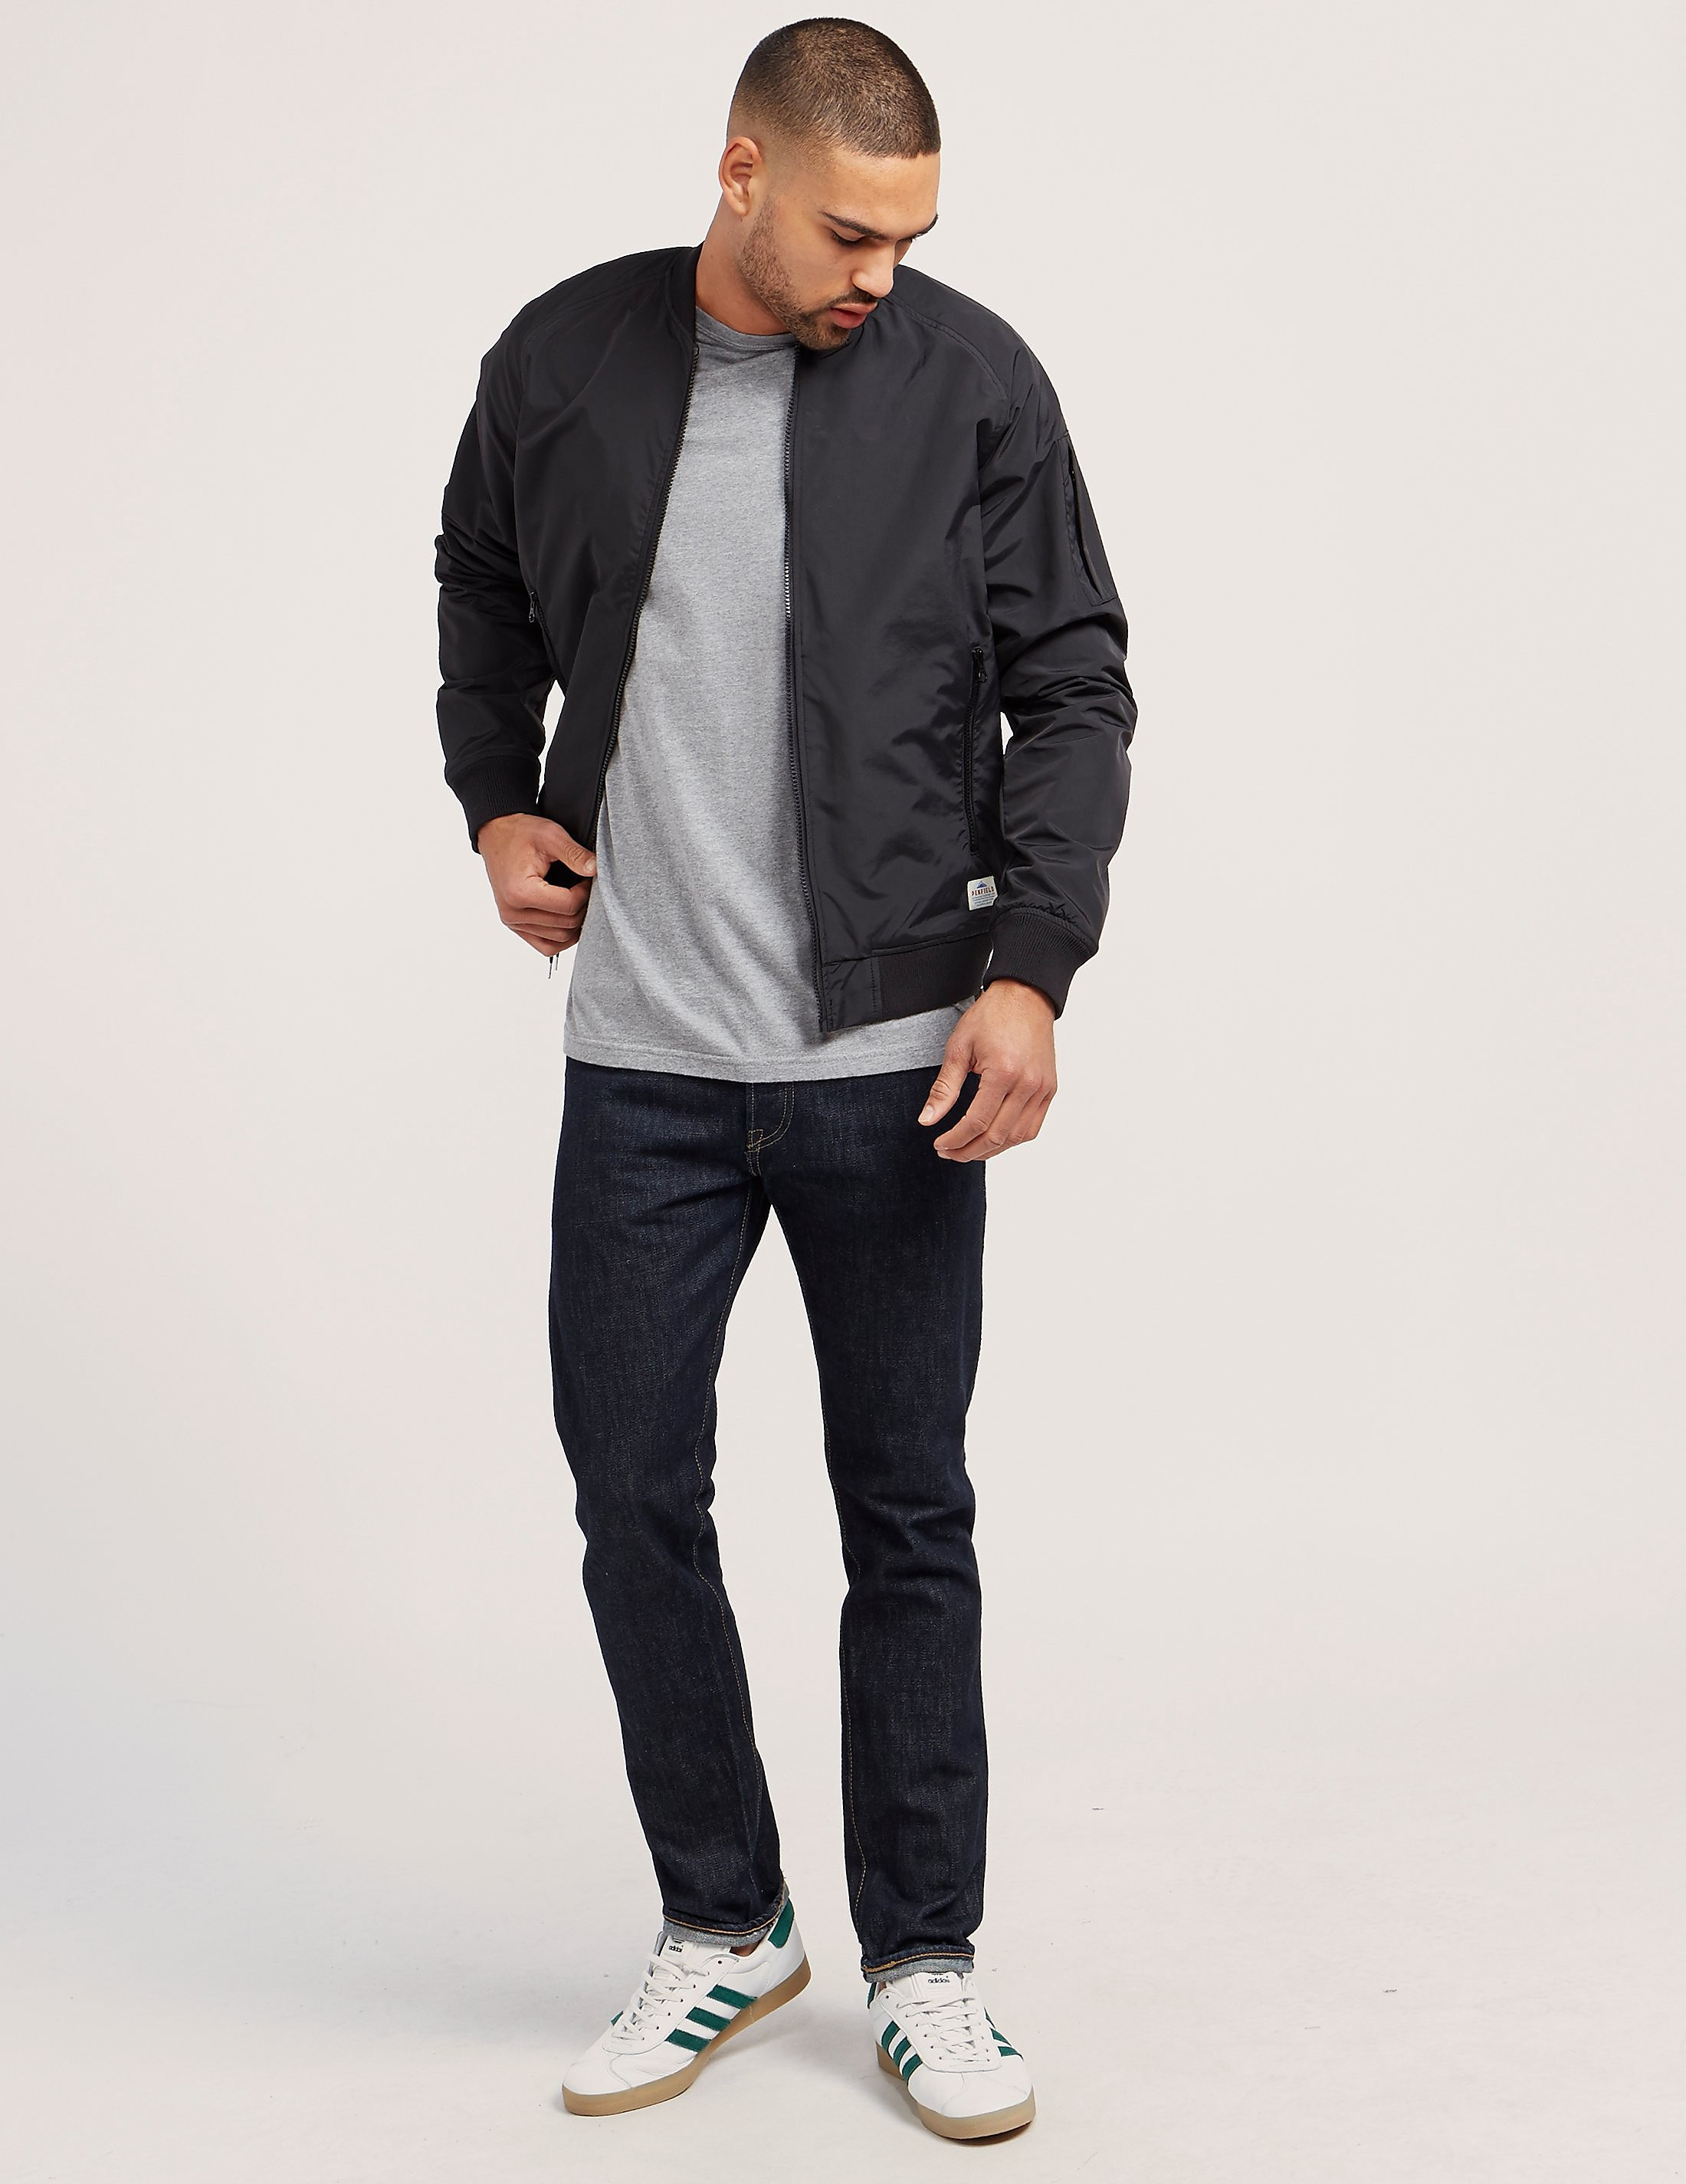 Penfield Oakenfield Bomber Jacket